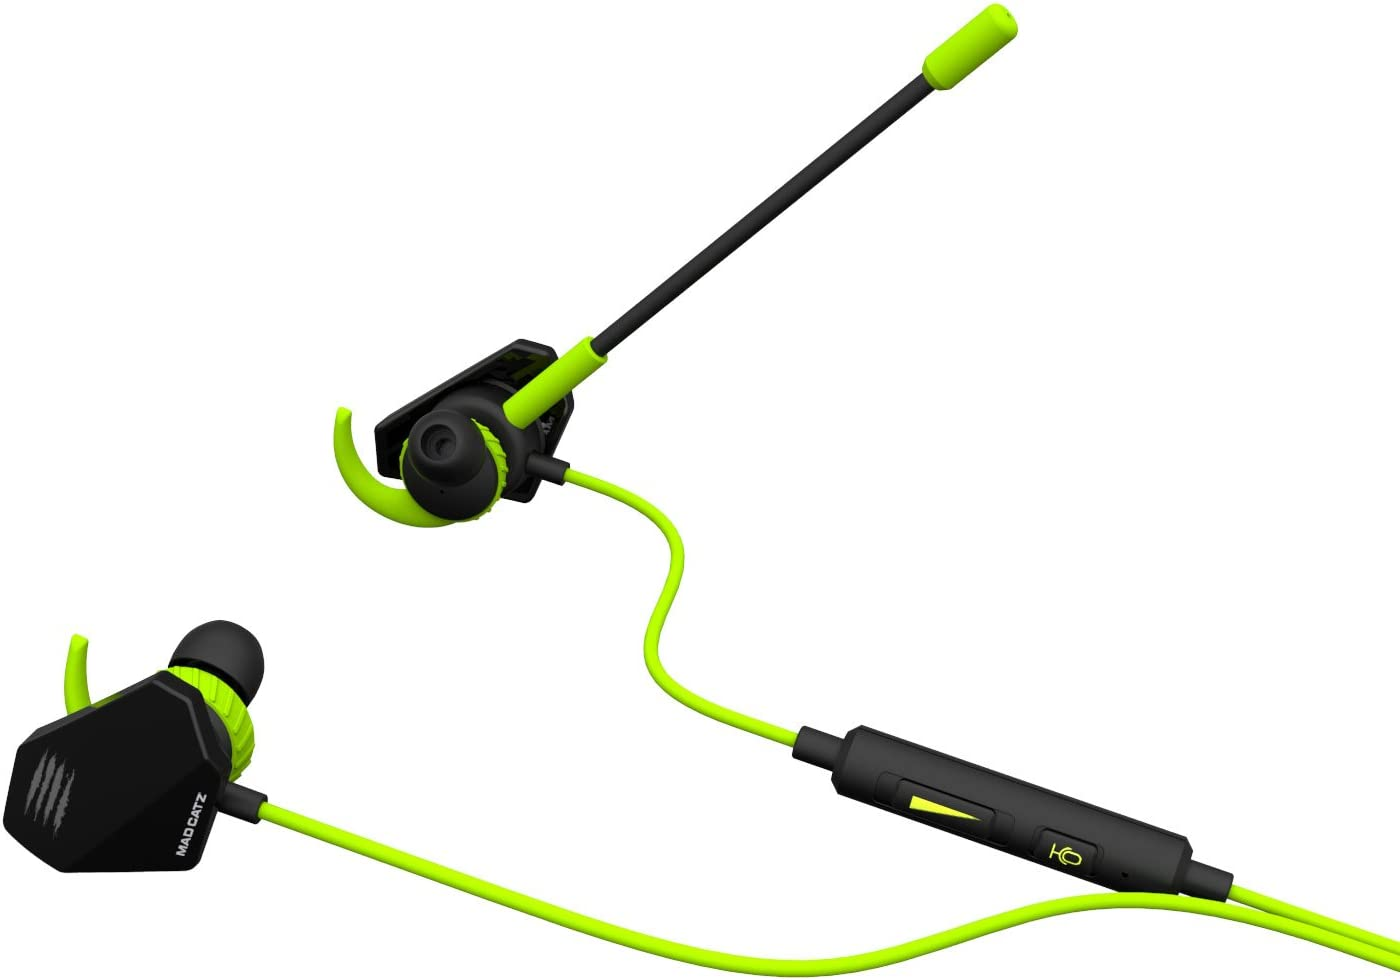 Mad Catz ES Pro 1 - best earbuds for gaming